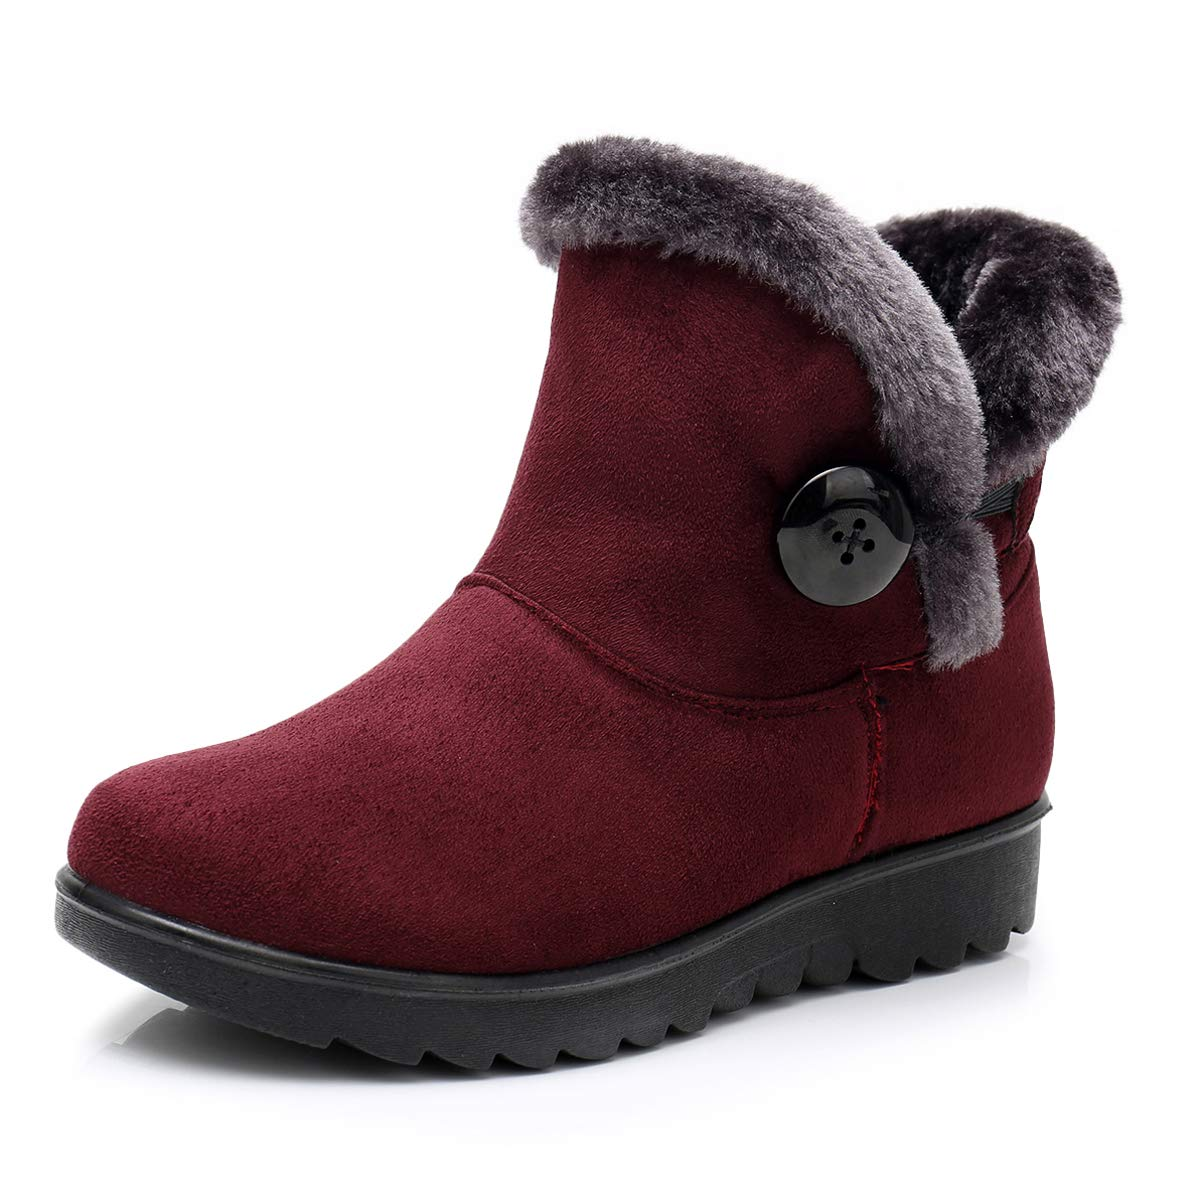 Winter Boots for Women Snow Boots for Women Ankle Boots Fashion Wedge Heel Winter Snow Boots Ankle Boots